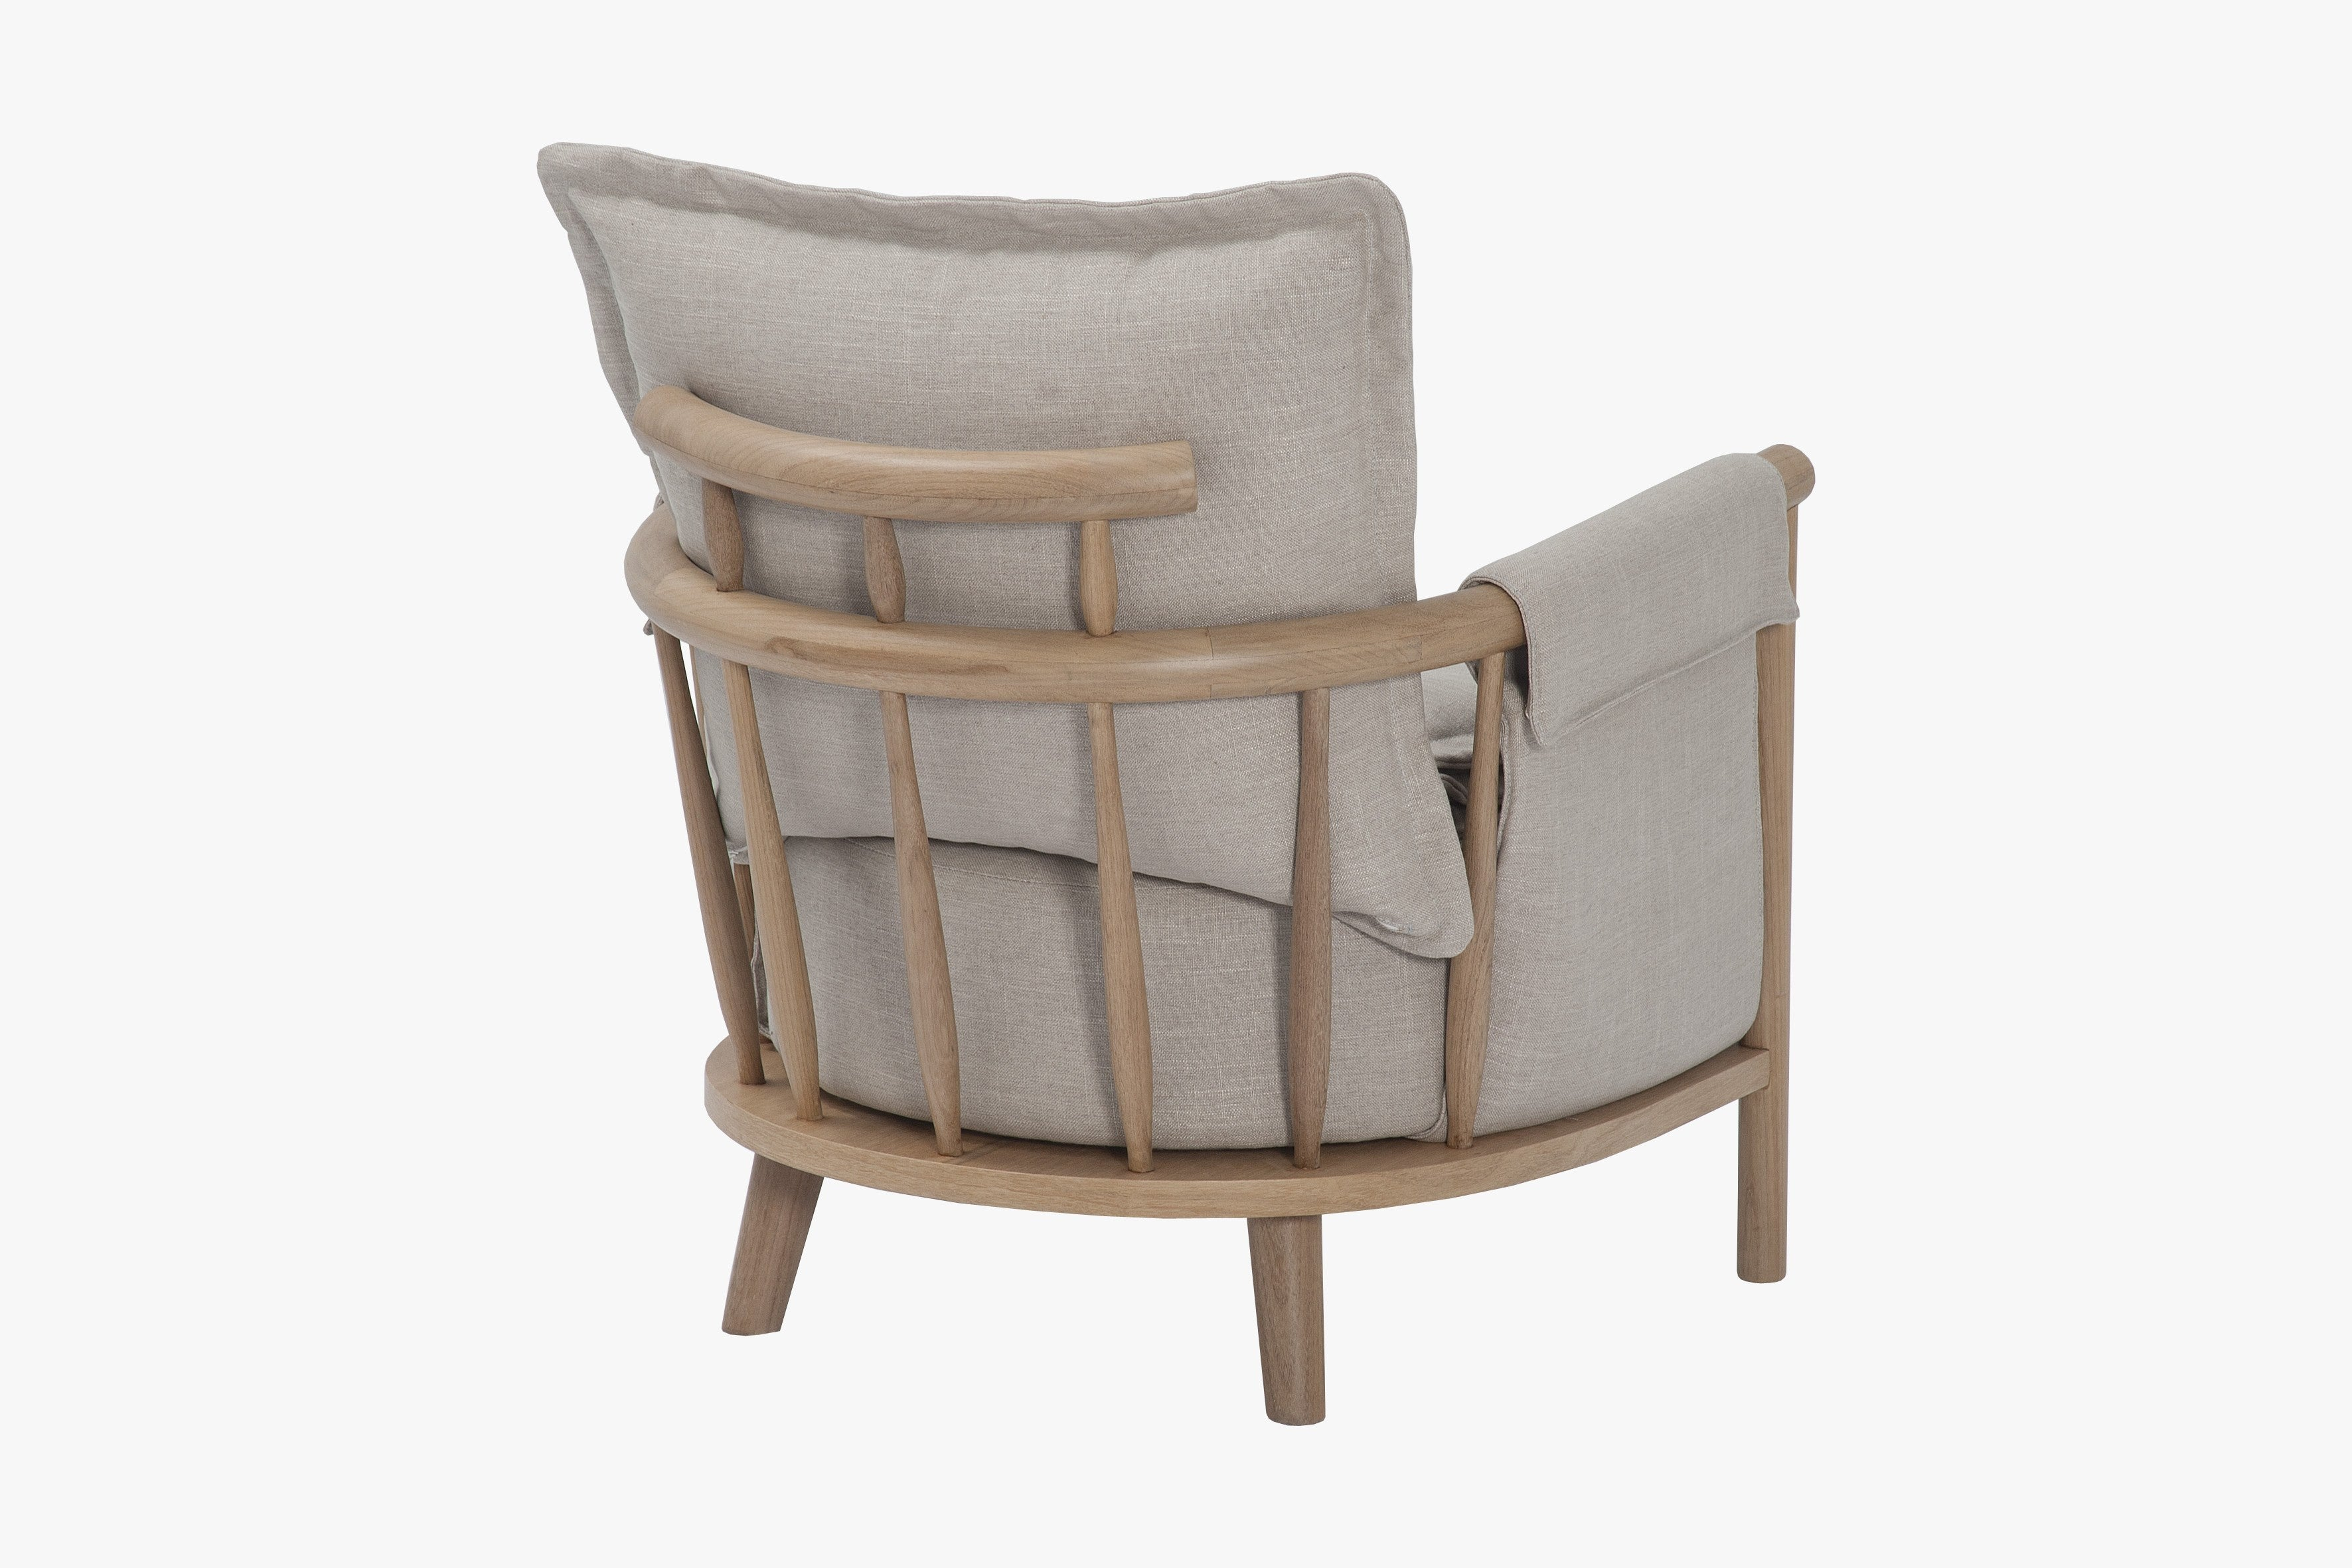 Ravello lounge armchair by Rejane Carvalho Leite - Kelly Christian Designs